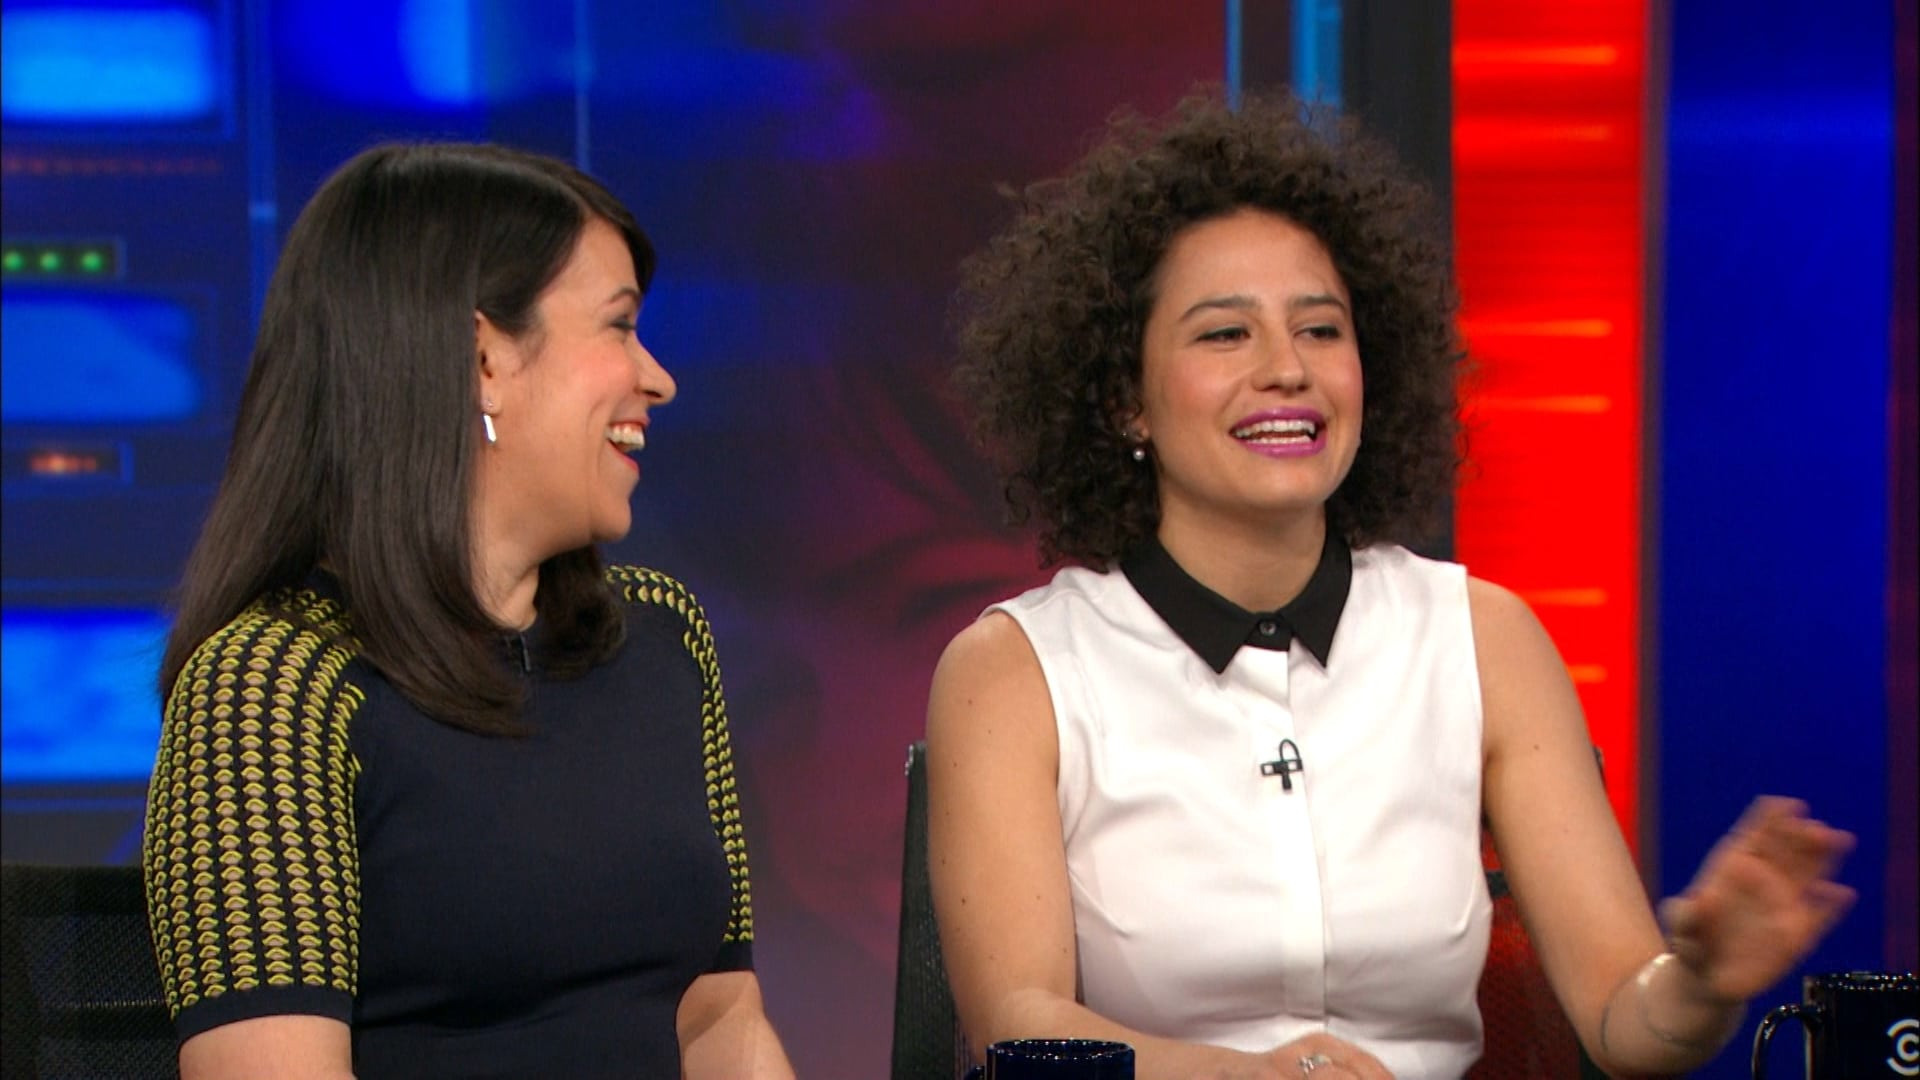 The Daily Show with Trevor Noah Season 20 :Episode 73  Abbi Jacobson & Ilana Glazer